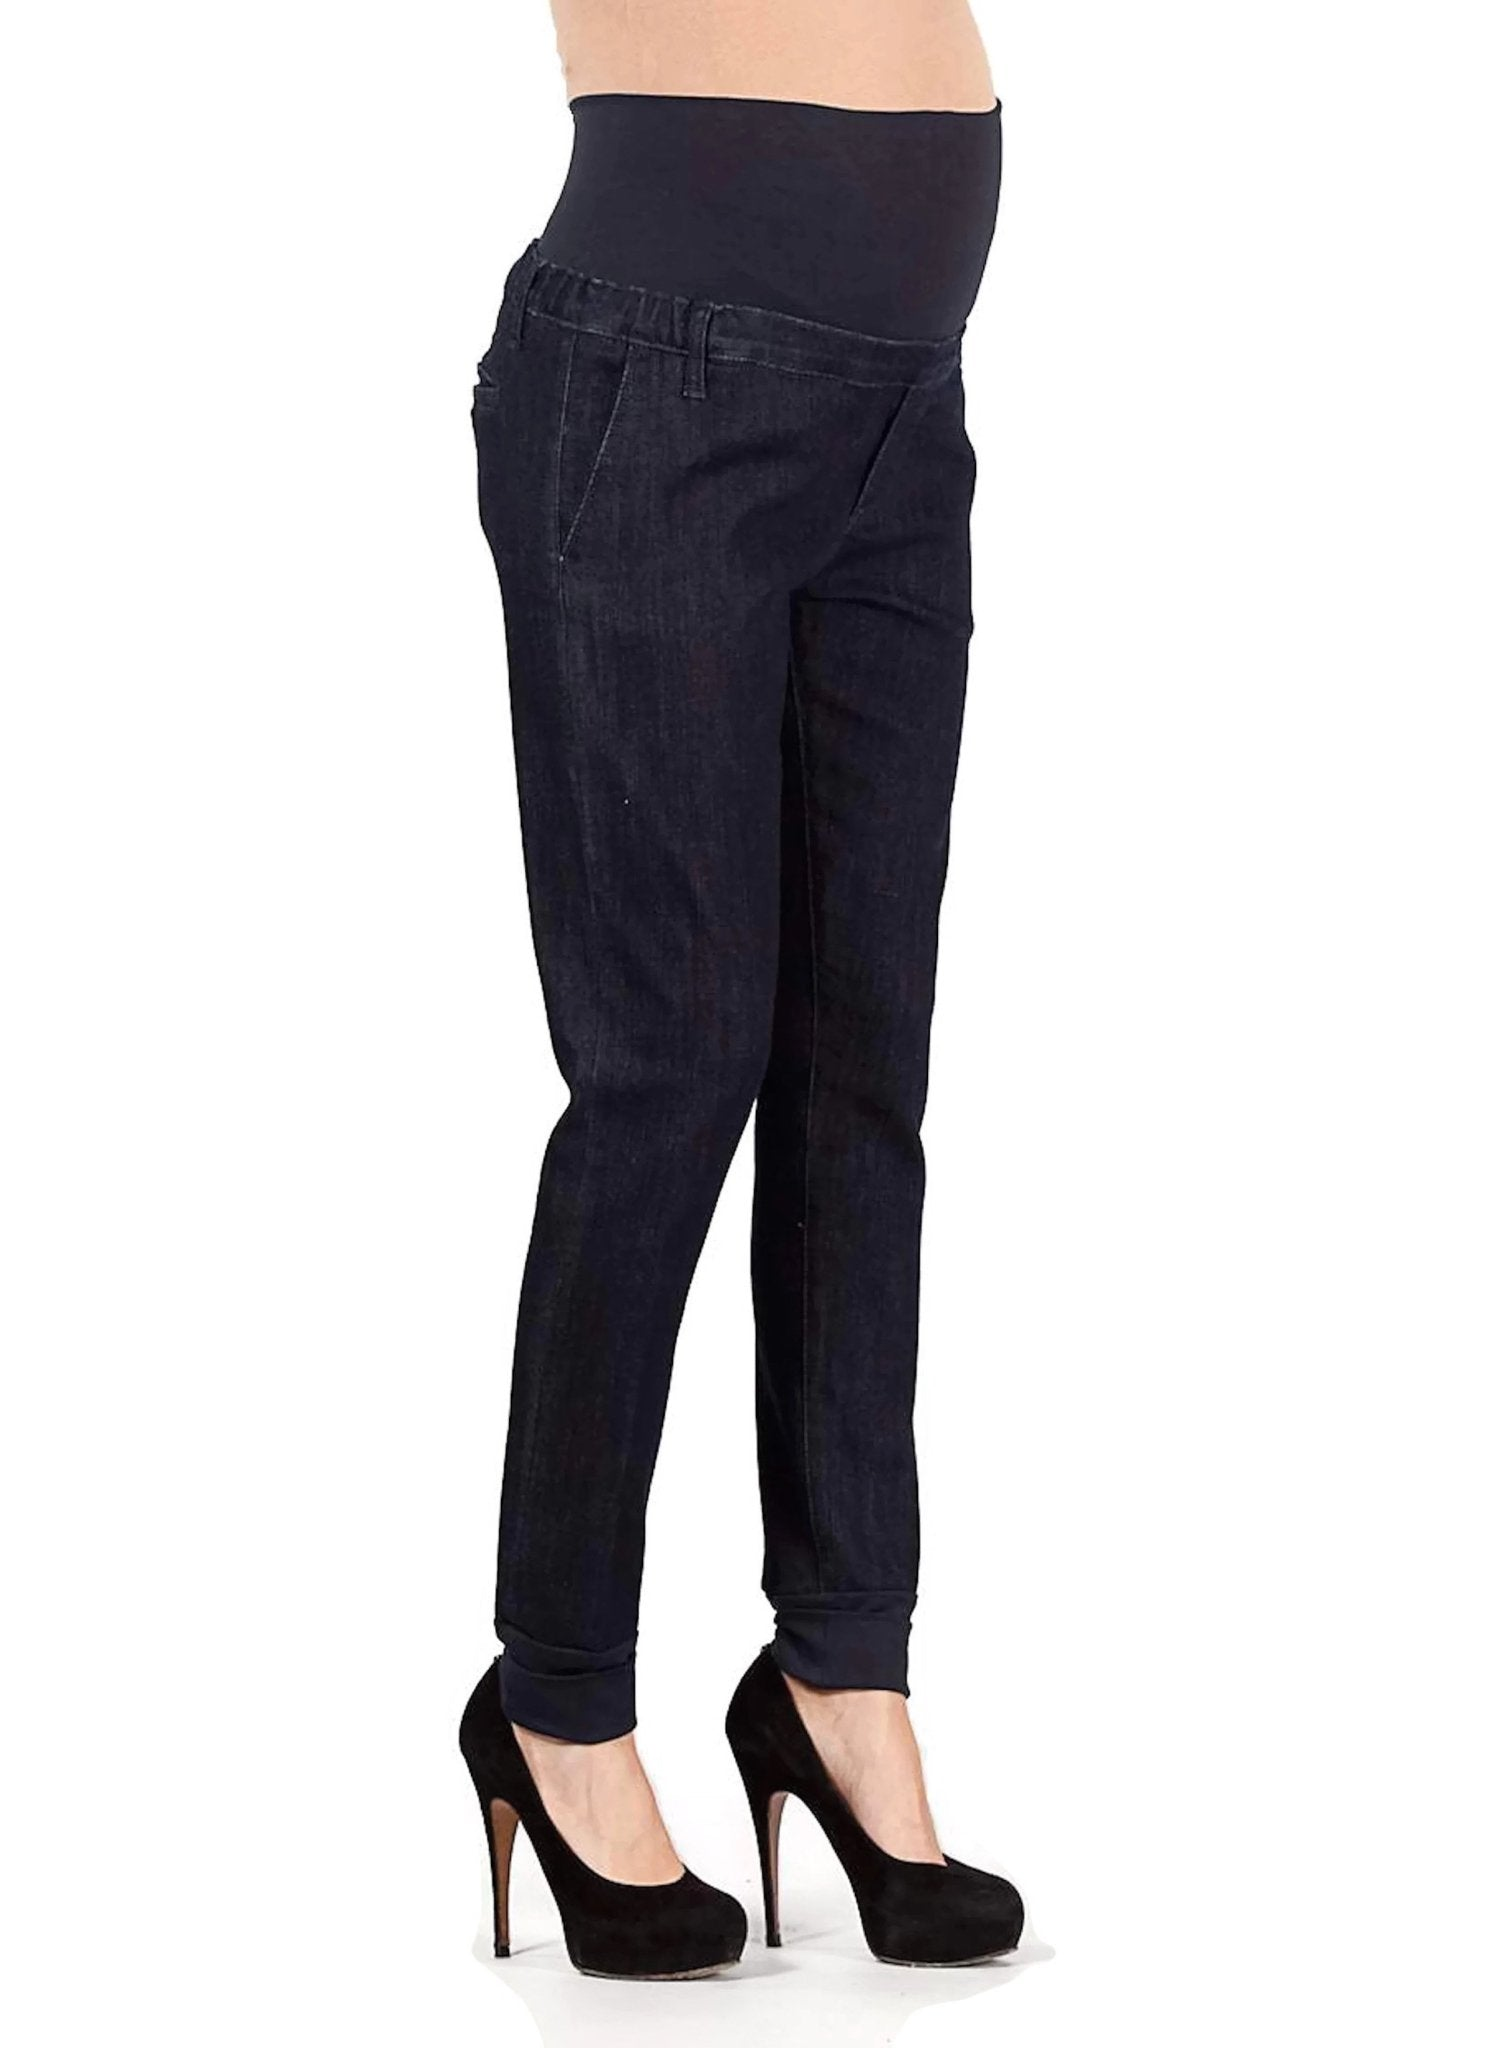 Maternity Chino Jeans with Ankle Cuffs - Mums and Bumps